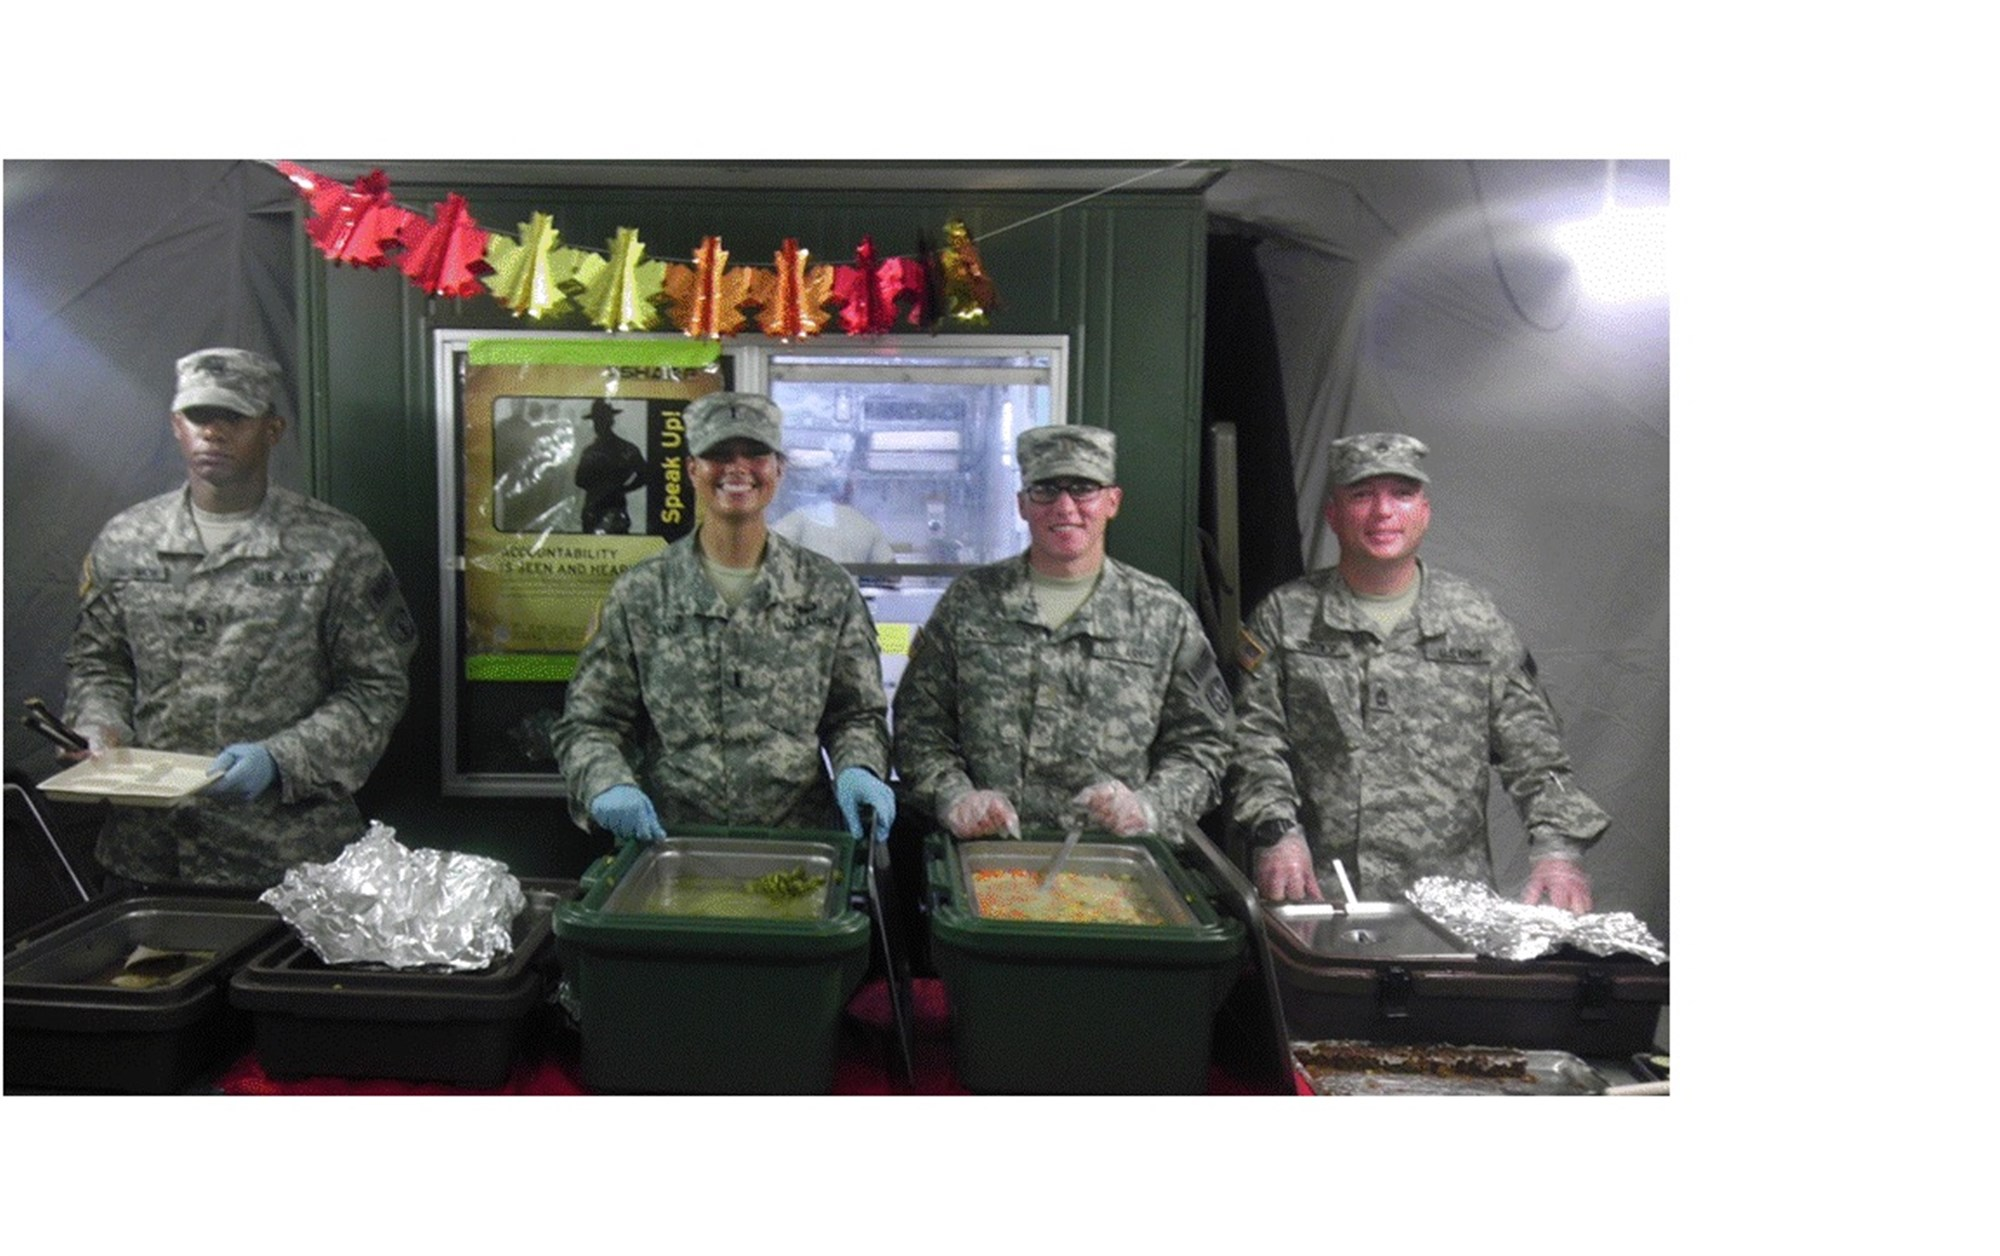 Soldiers serve a hot Thanksgiving Day meal to fellow service members and support personnel. Deliberate planning and actions across the entire logistics enterprise united the efforts of a multi-disciplined, interagency team formed across nations, governments and non-government organizations (NGOs) which directly led to success in OPERATION United Assistance. (U.S. AFRICOM photo/released)